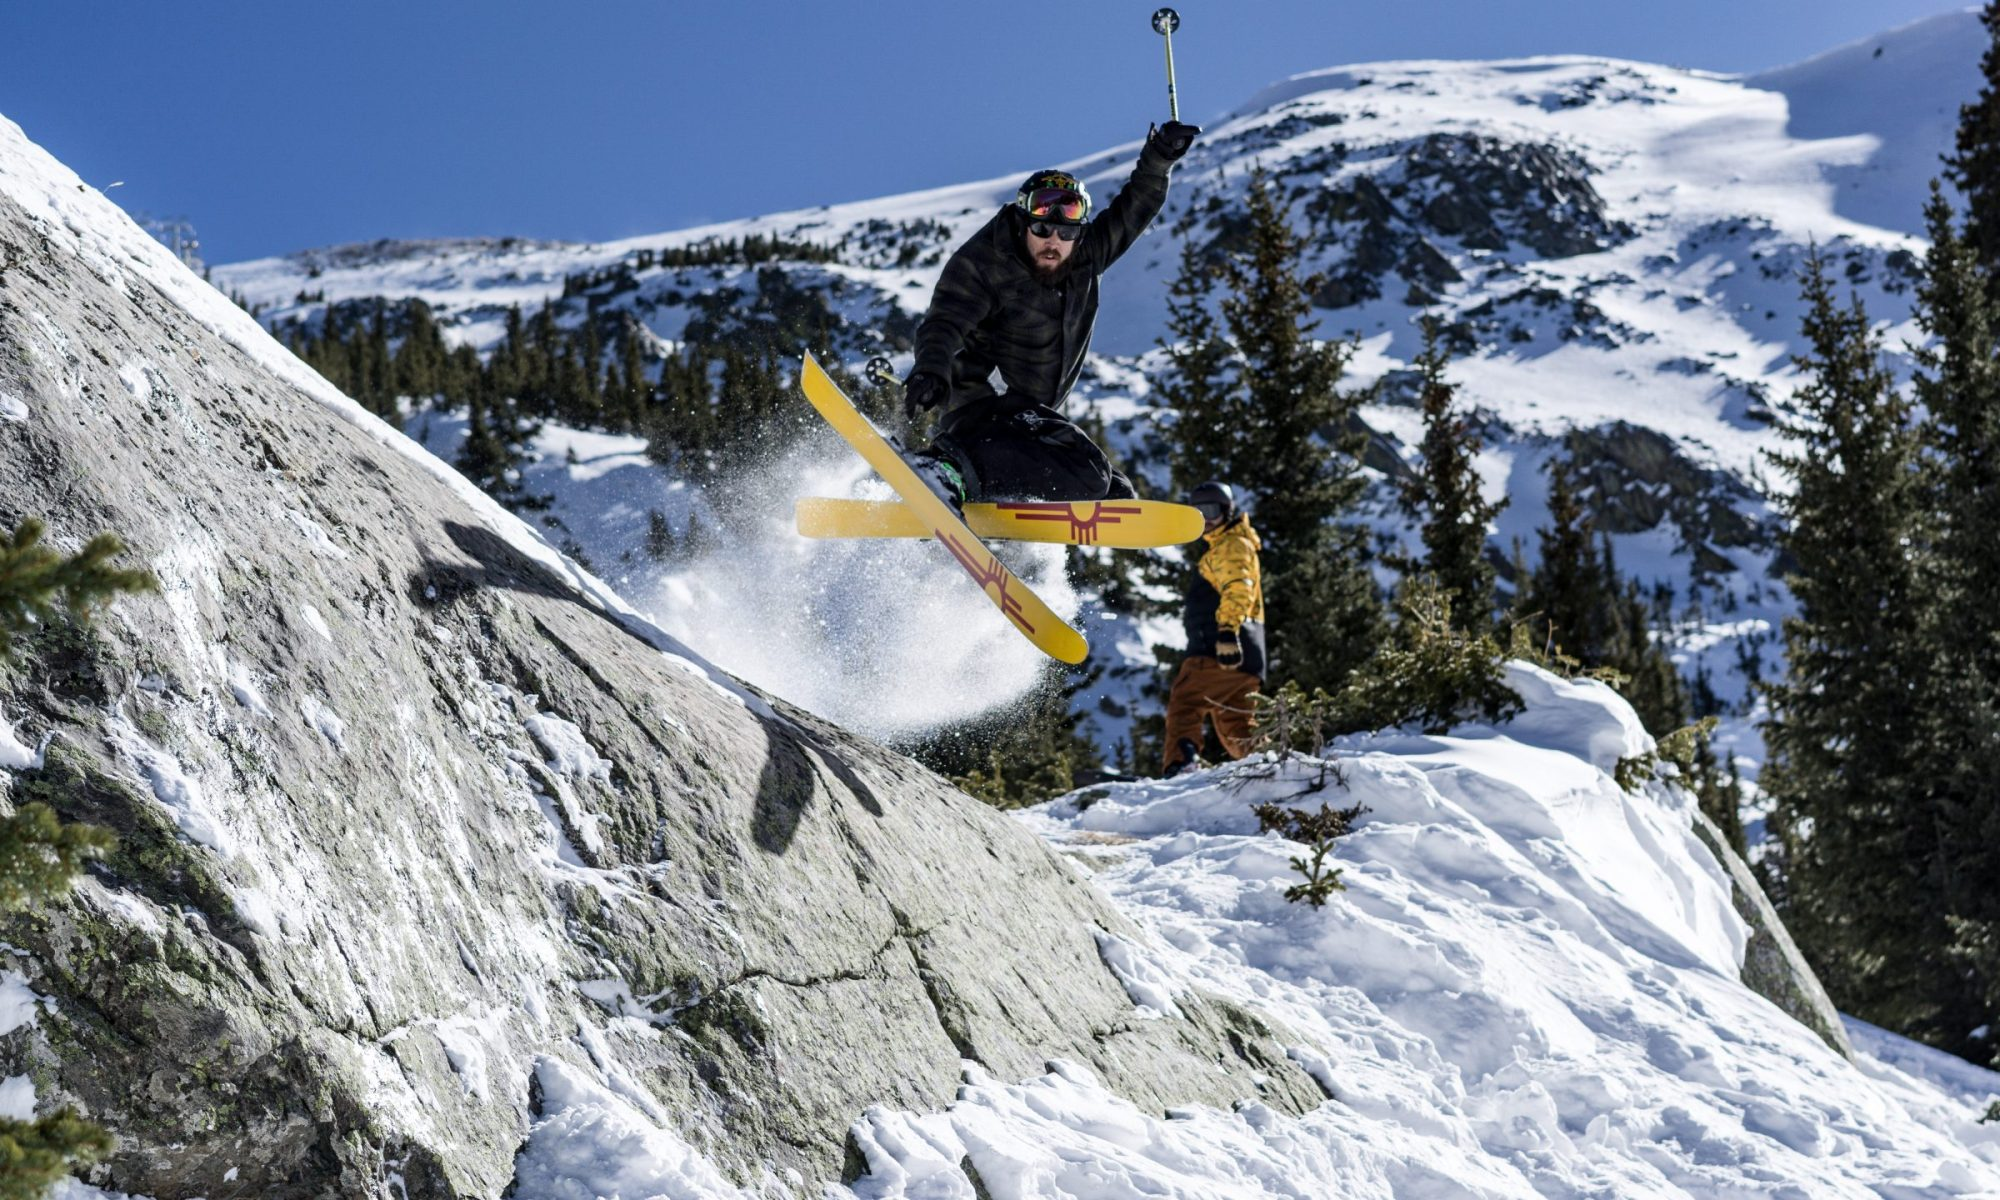 Skiing in Taos - Photo credit: Ski Taos. Taos Regional Airport Launches Taos Air – an Air Service to Dallas, Austin